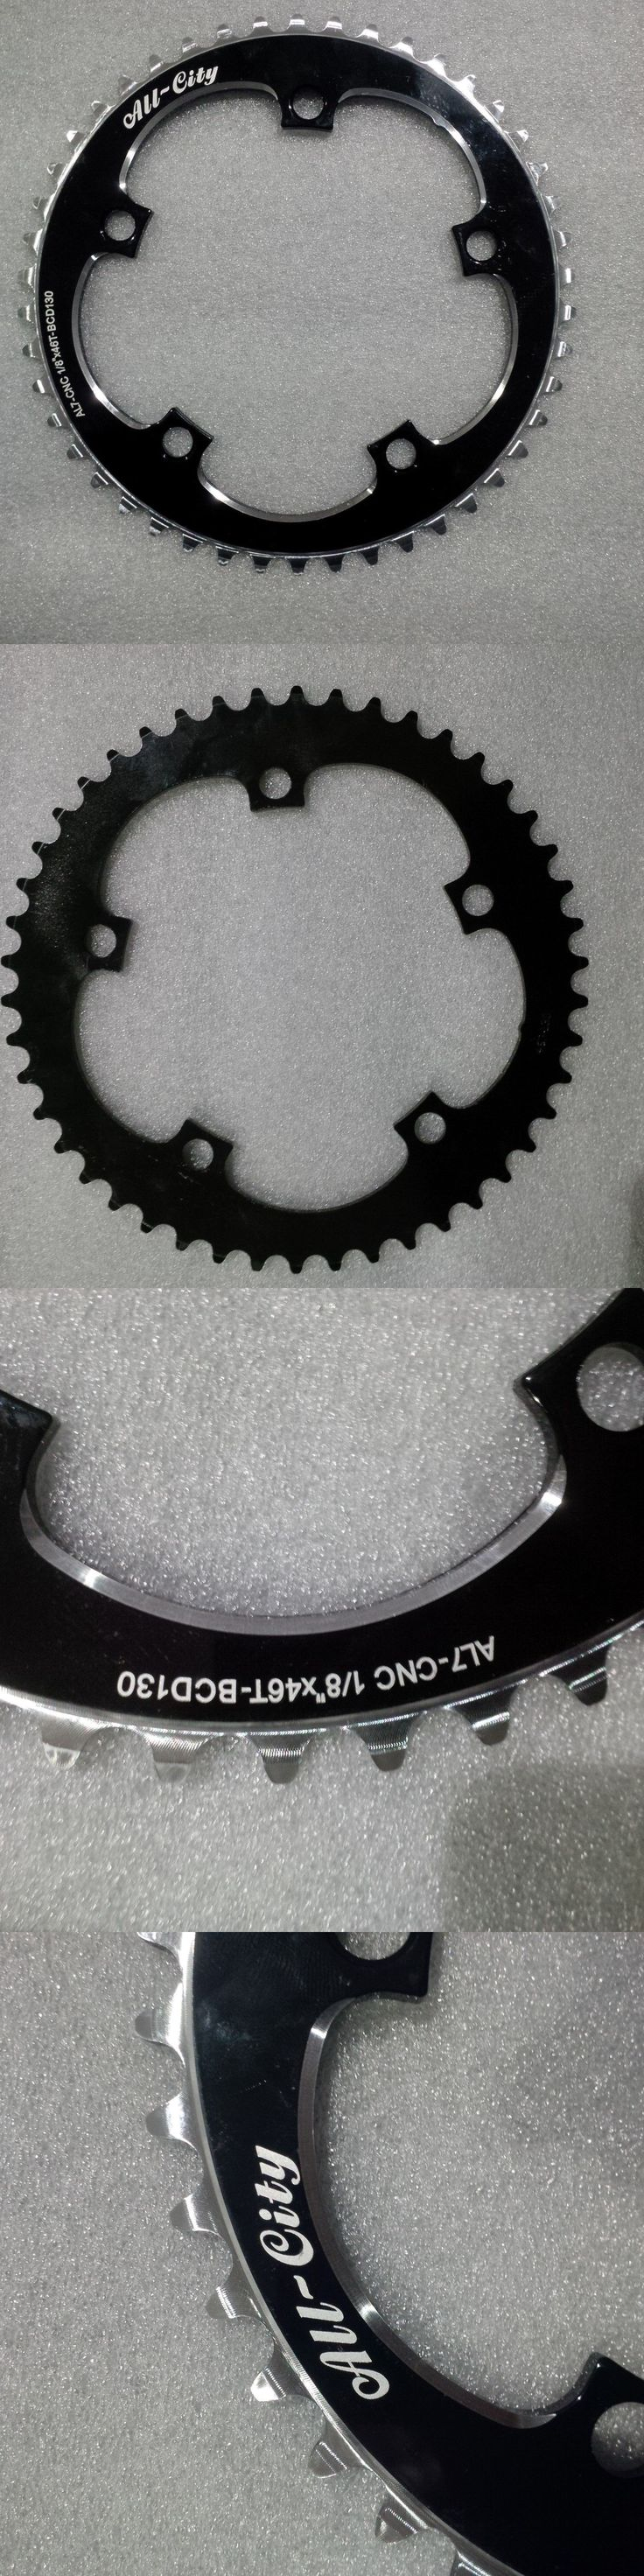 Chainrings and BMX Sprockets 177811: All-City 46T Chainring Black Bcd130 1 8 ***New*** -> BUY IT NOW ONLY: $55 on eBay!